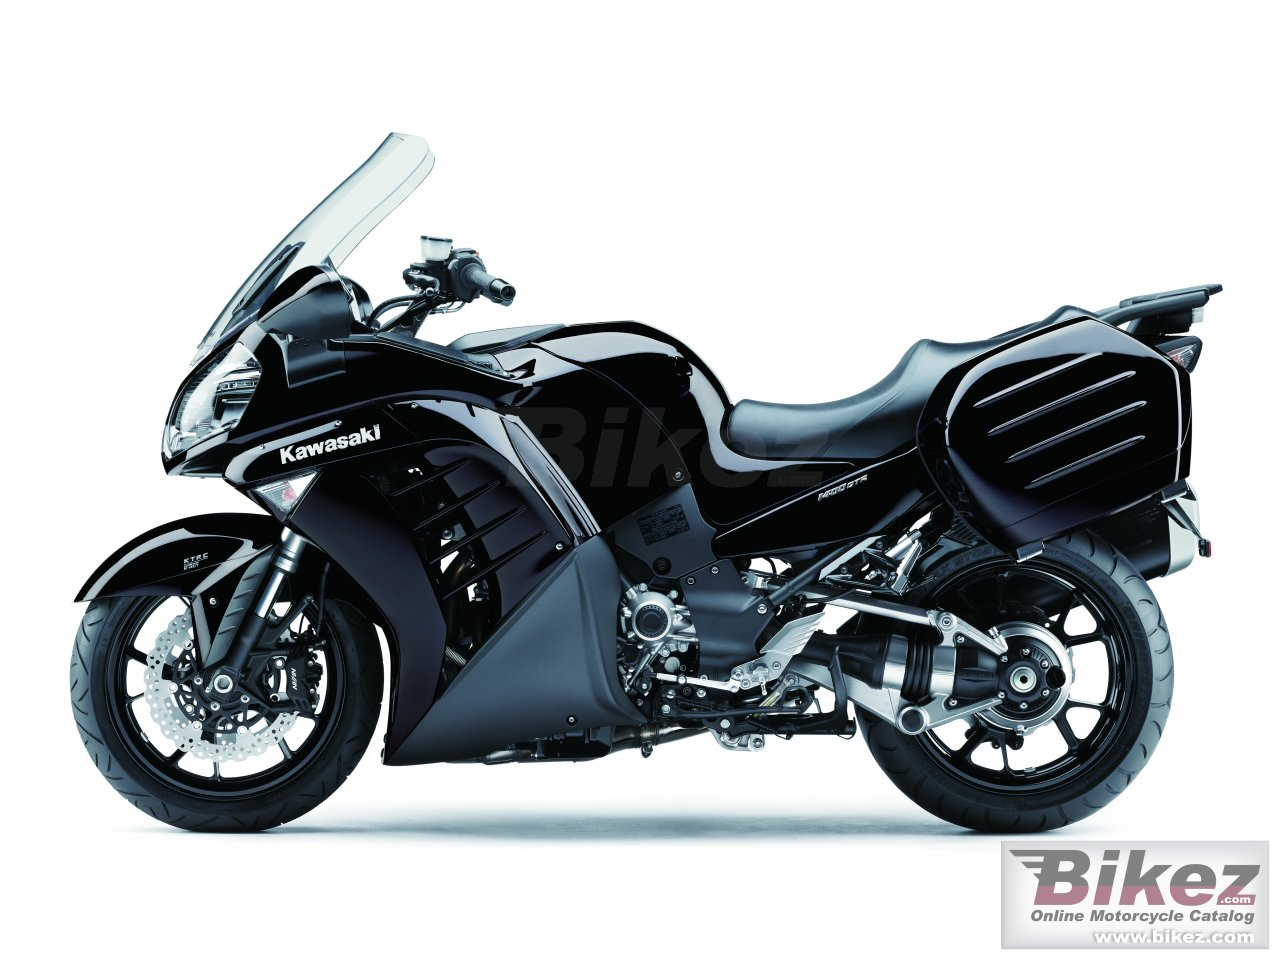 Big Kawasaki 1400 gtr picture and wallpaper from Bikez.com